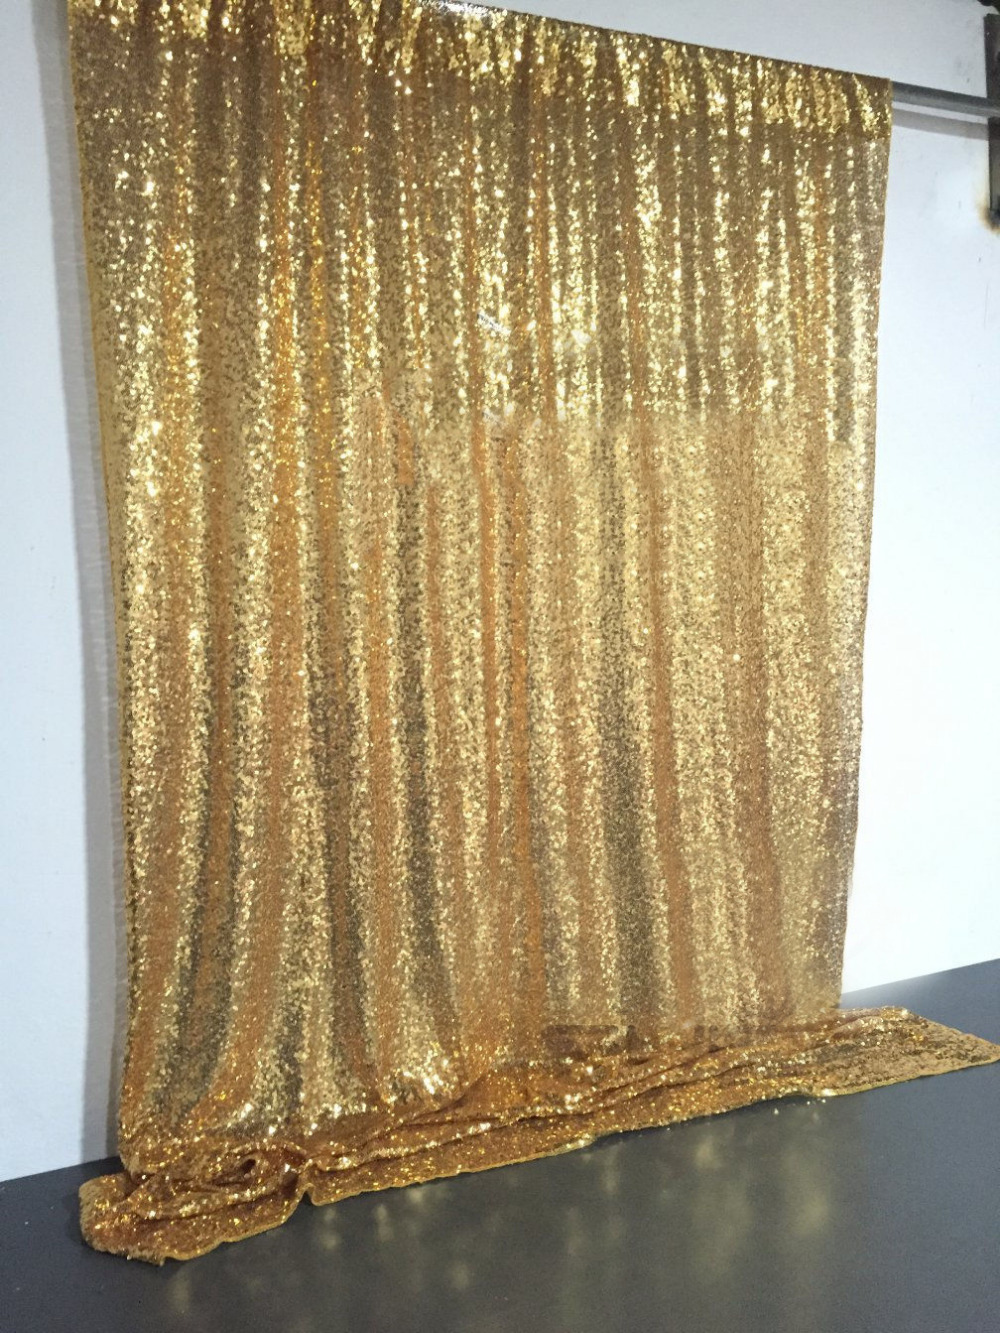 Color booth online - 1 3 1 8m 9 Color Sequin Photo Backdrop Wedding Photo Booth Photography Background